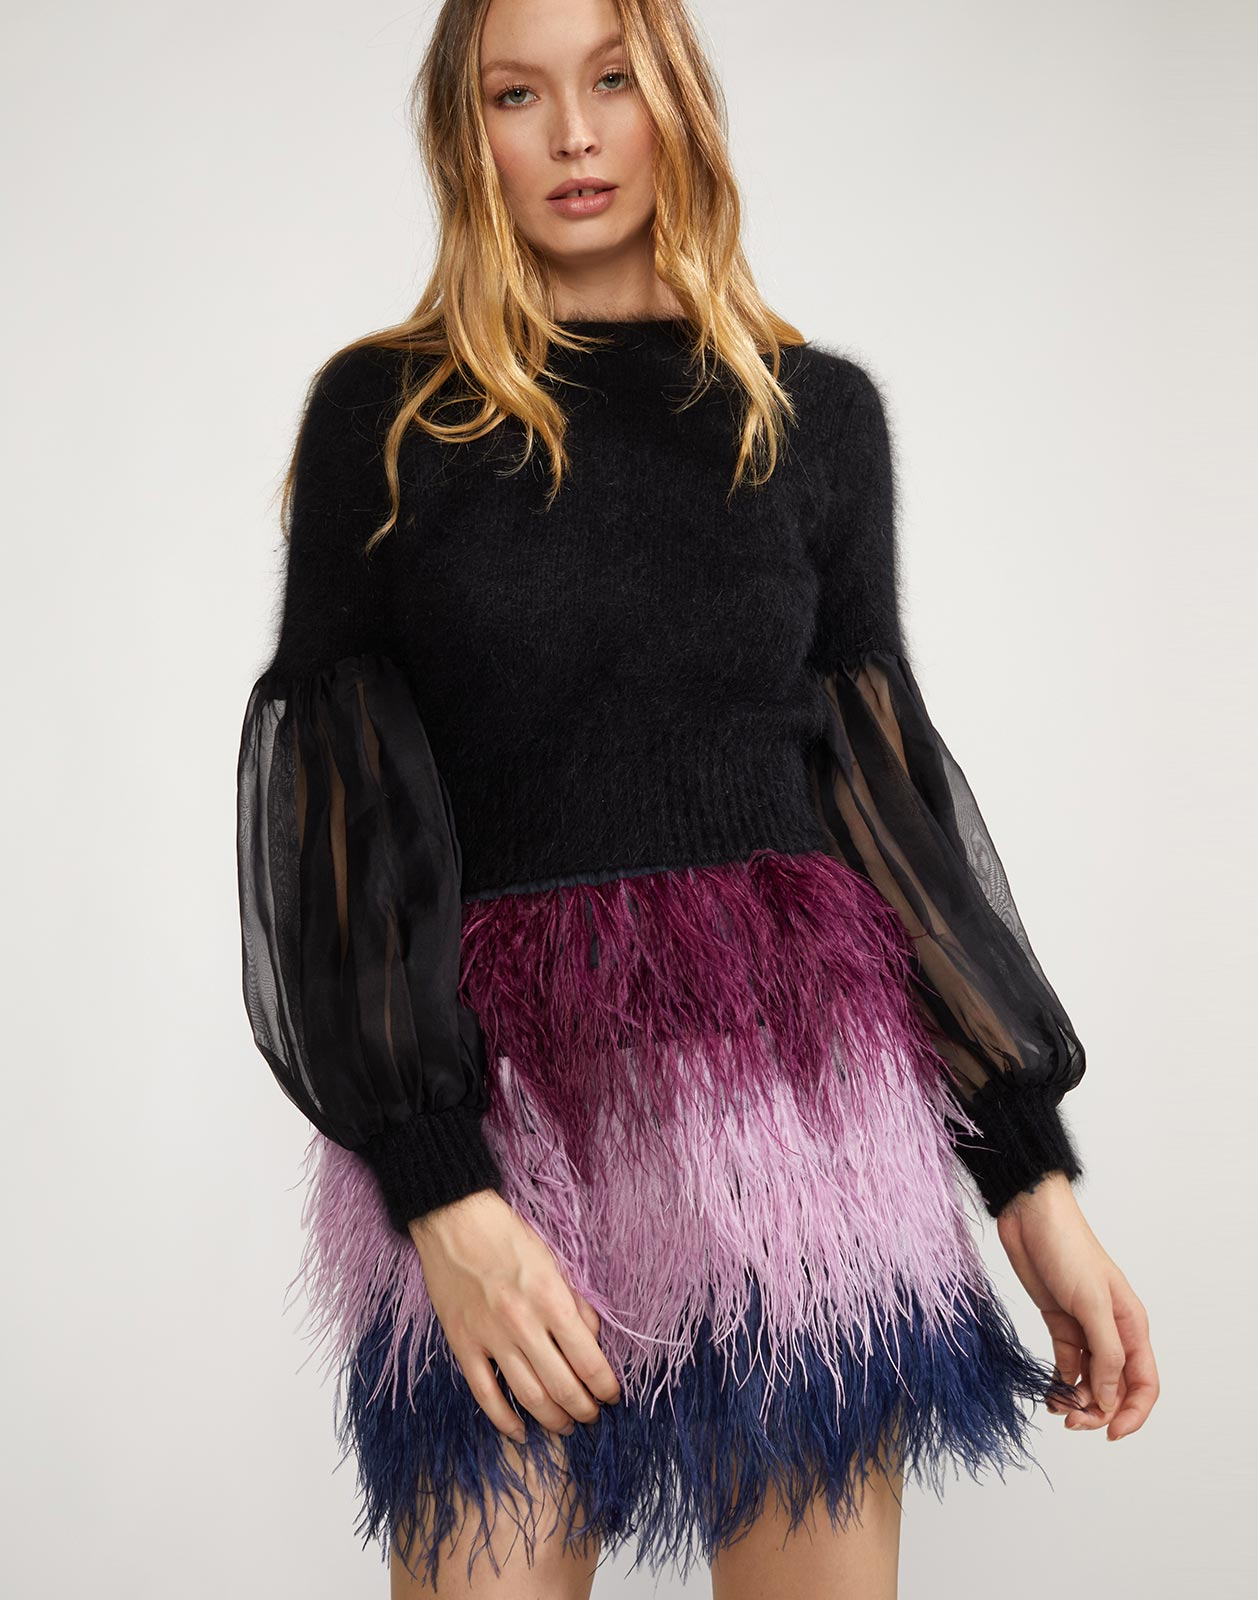 Angora sweater with sheer organza puff sleeves